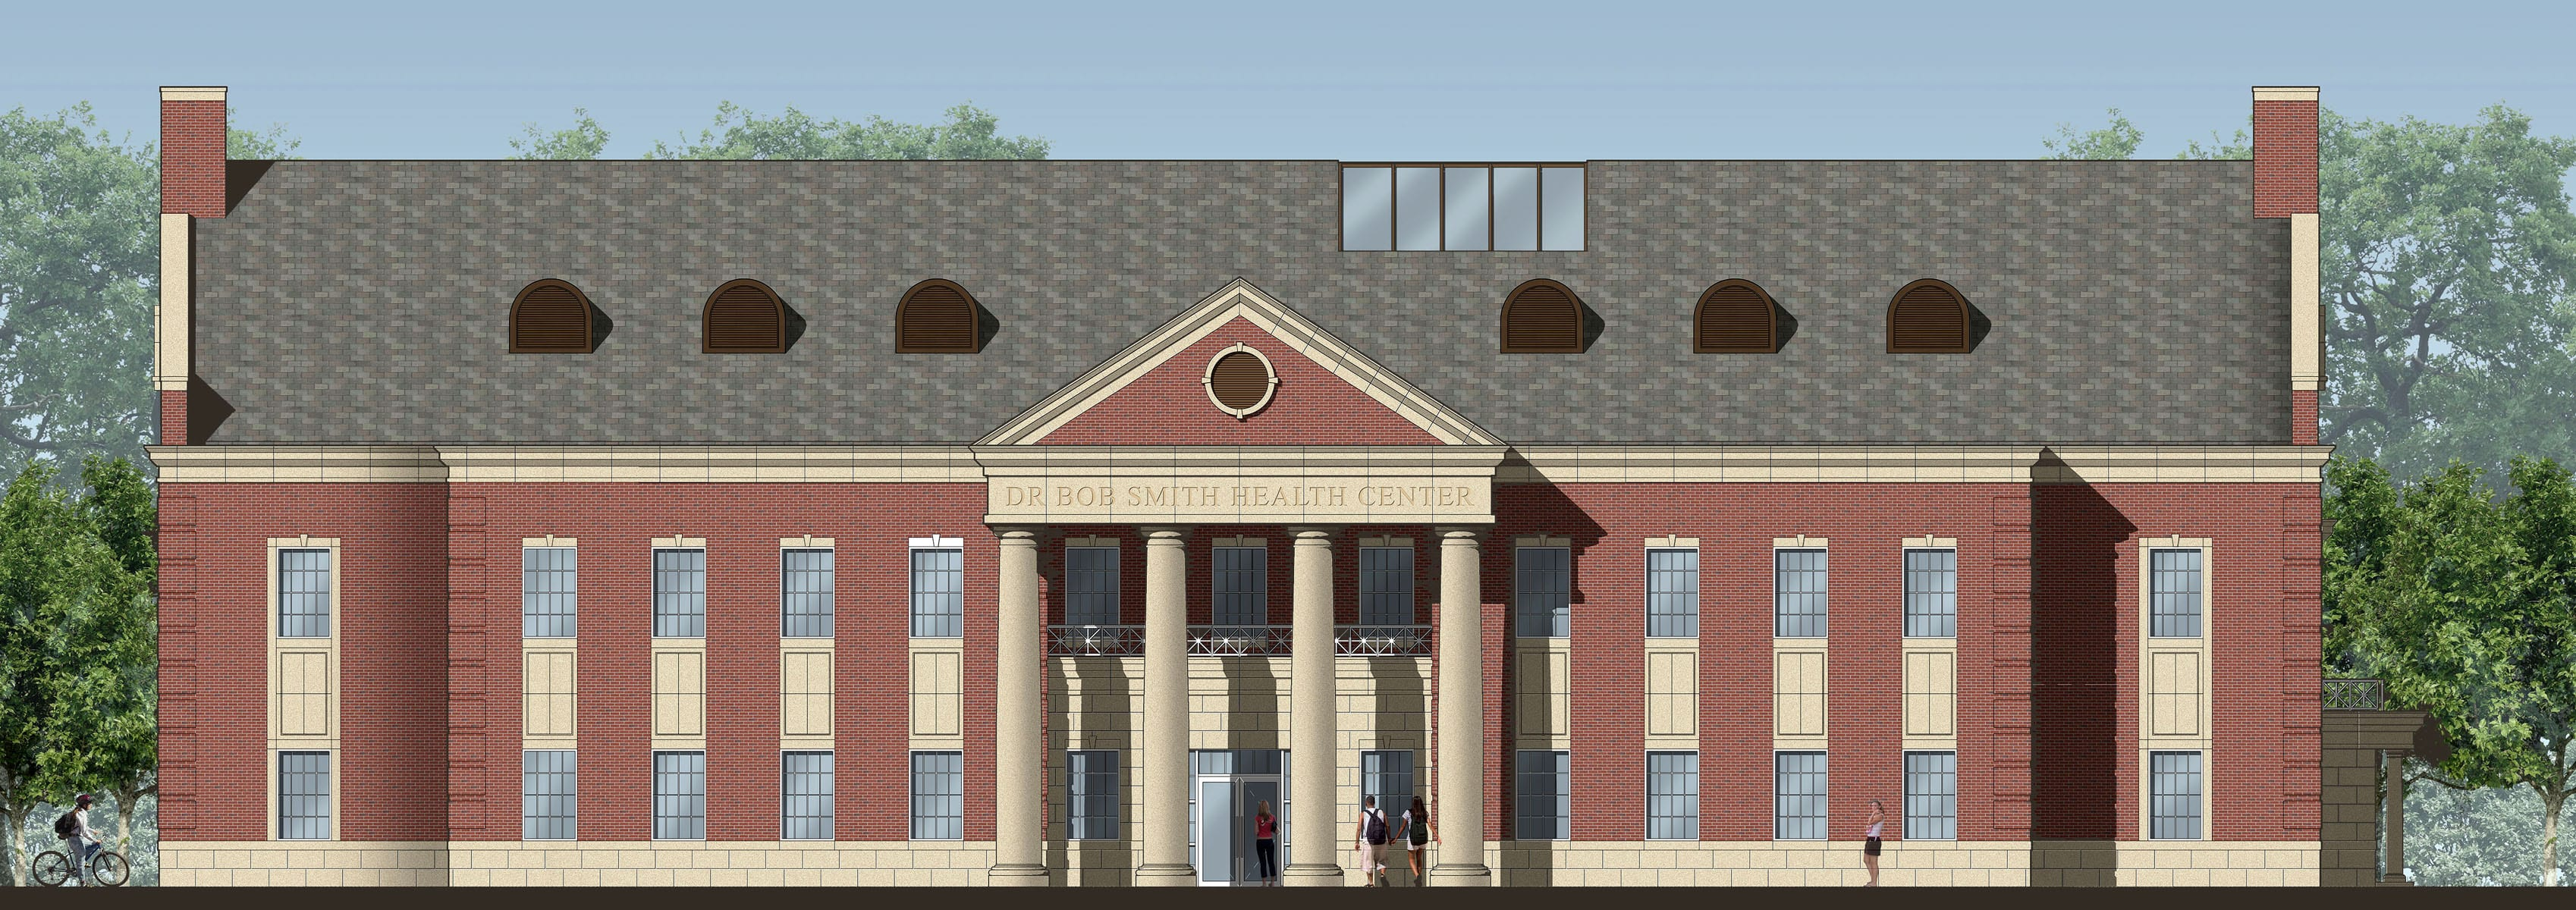 Artist's rendering of the Dr. Bob Smith Health Center at SMU